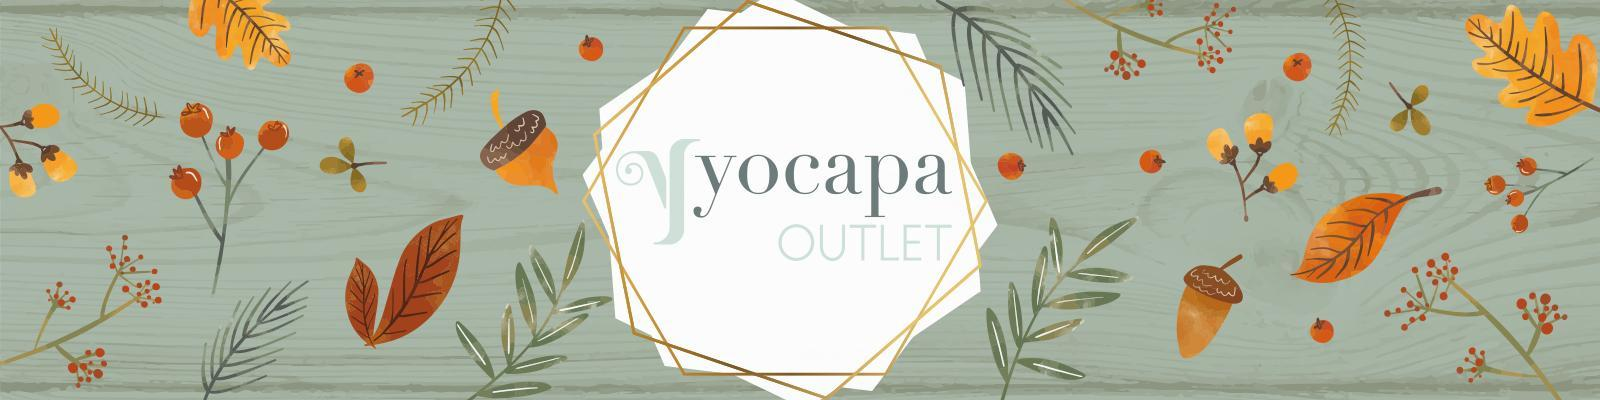 outletyocapa